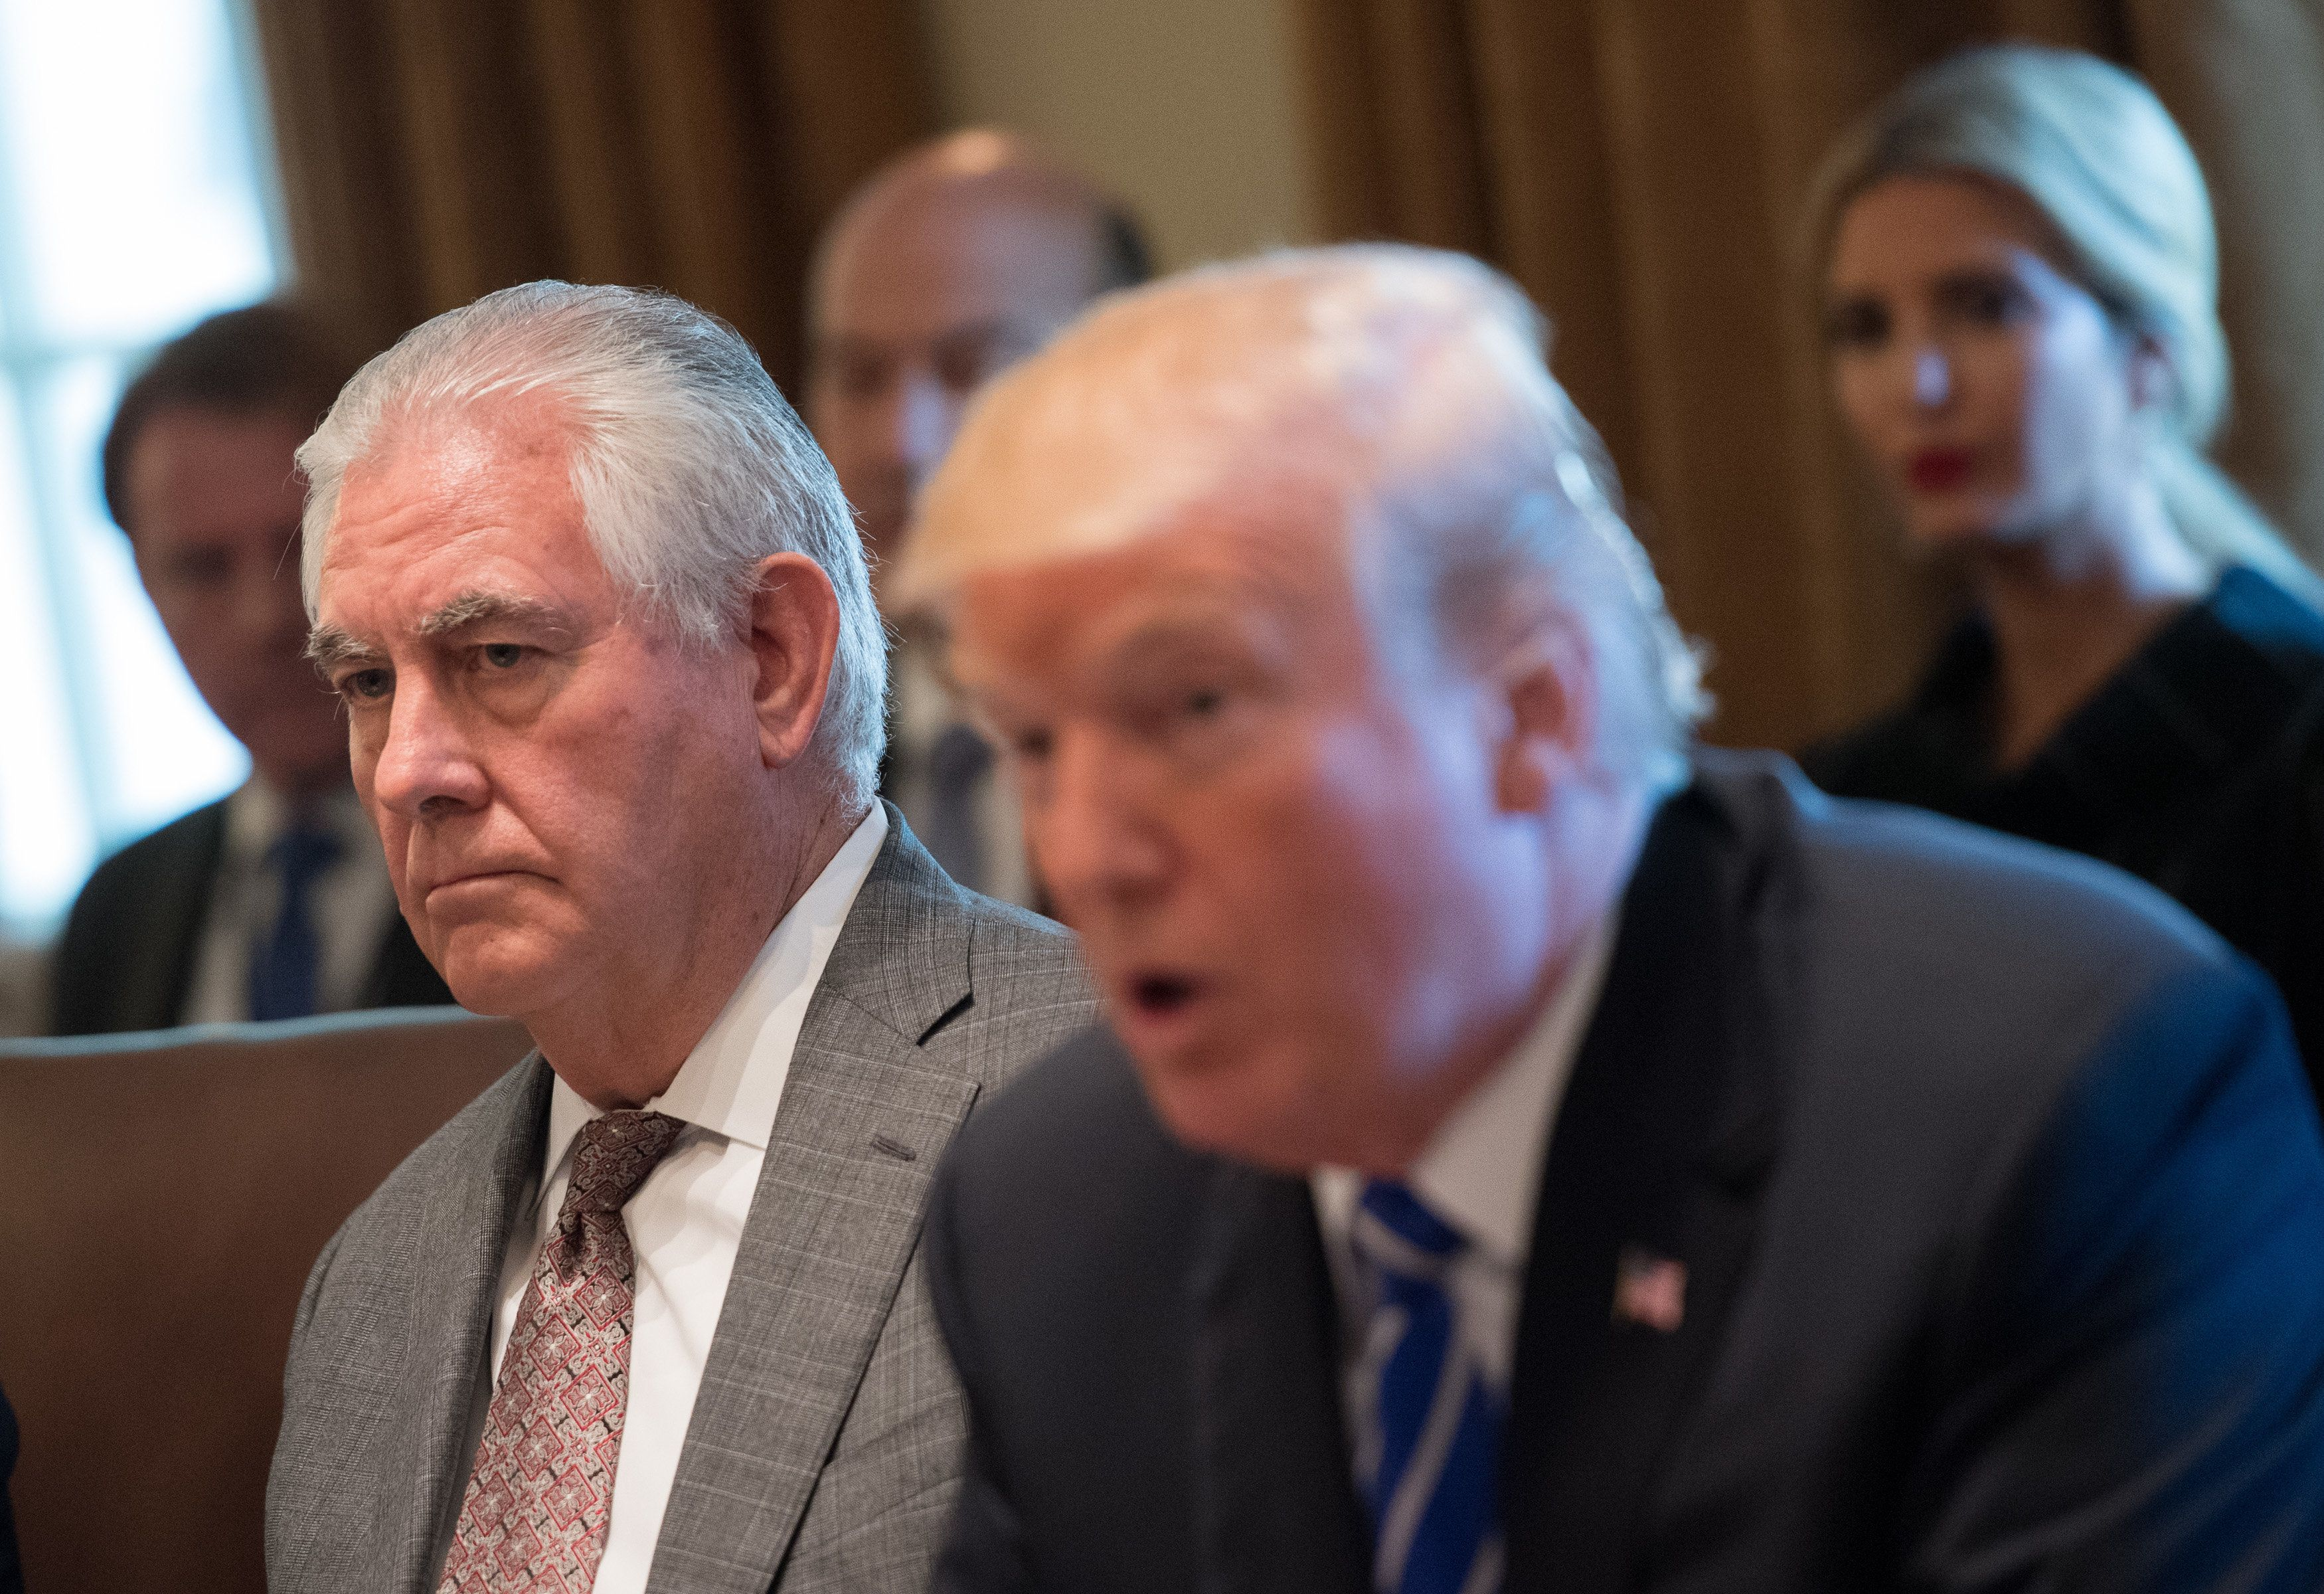 Then-Secretary of State Rex Tillerson and President Donald Trump at a Cabinet meeting on Nov. 20, 2017.